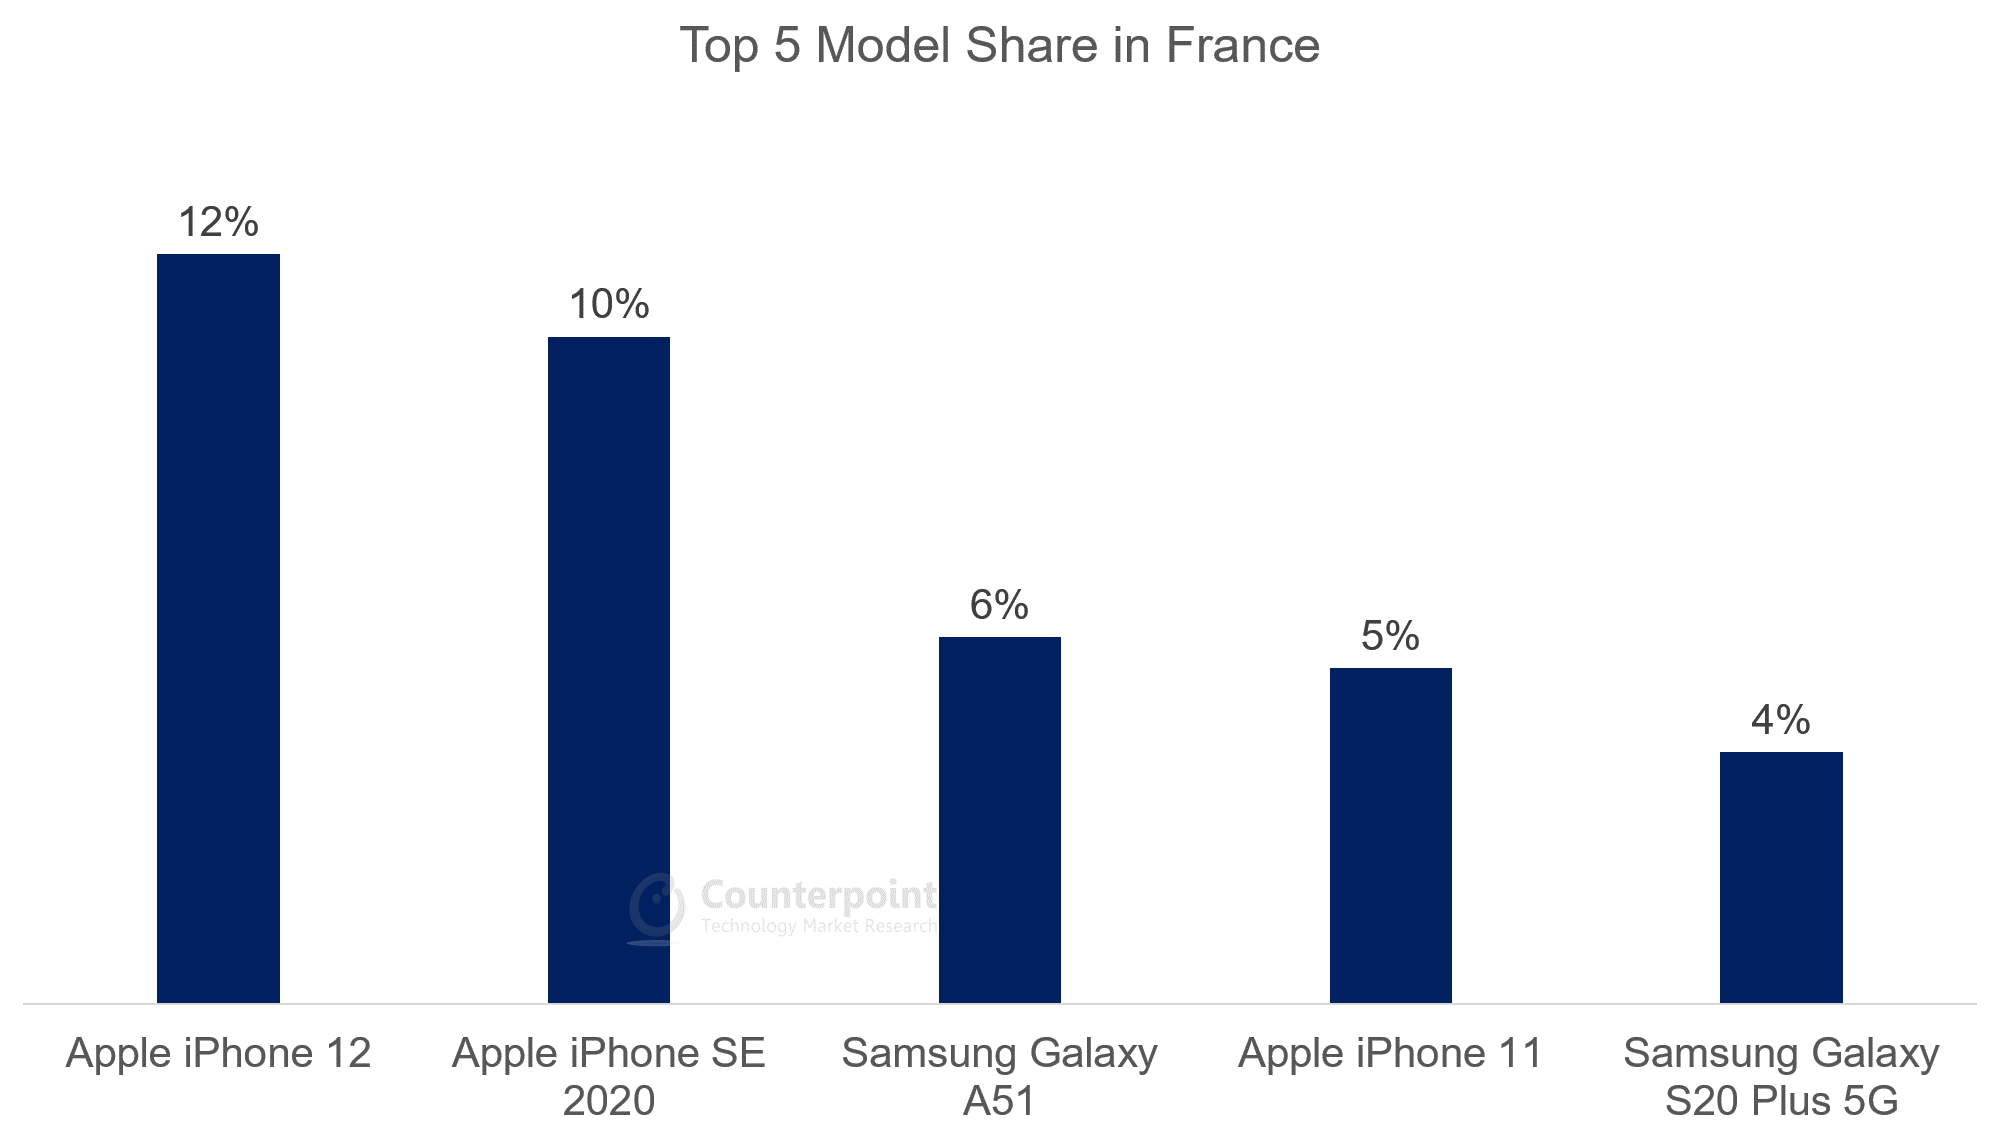 Top 5 Model Share in France - Oct 2020